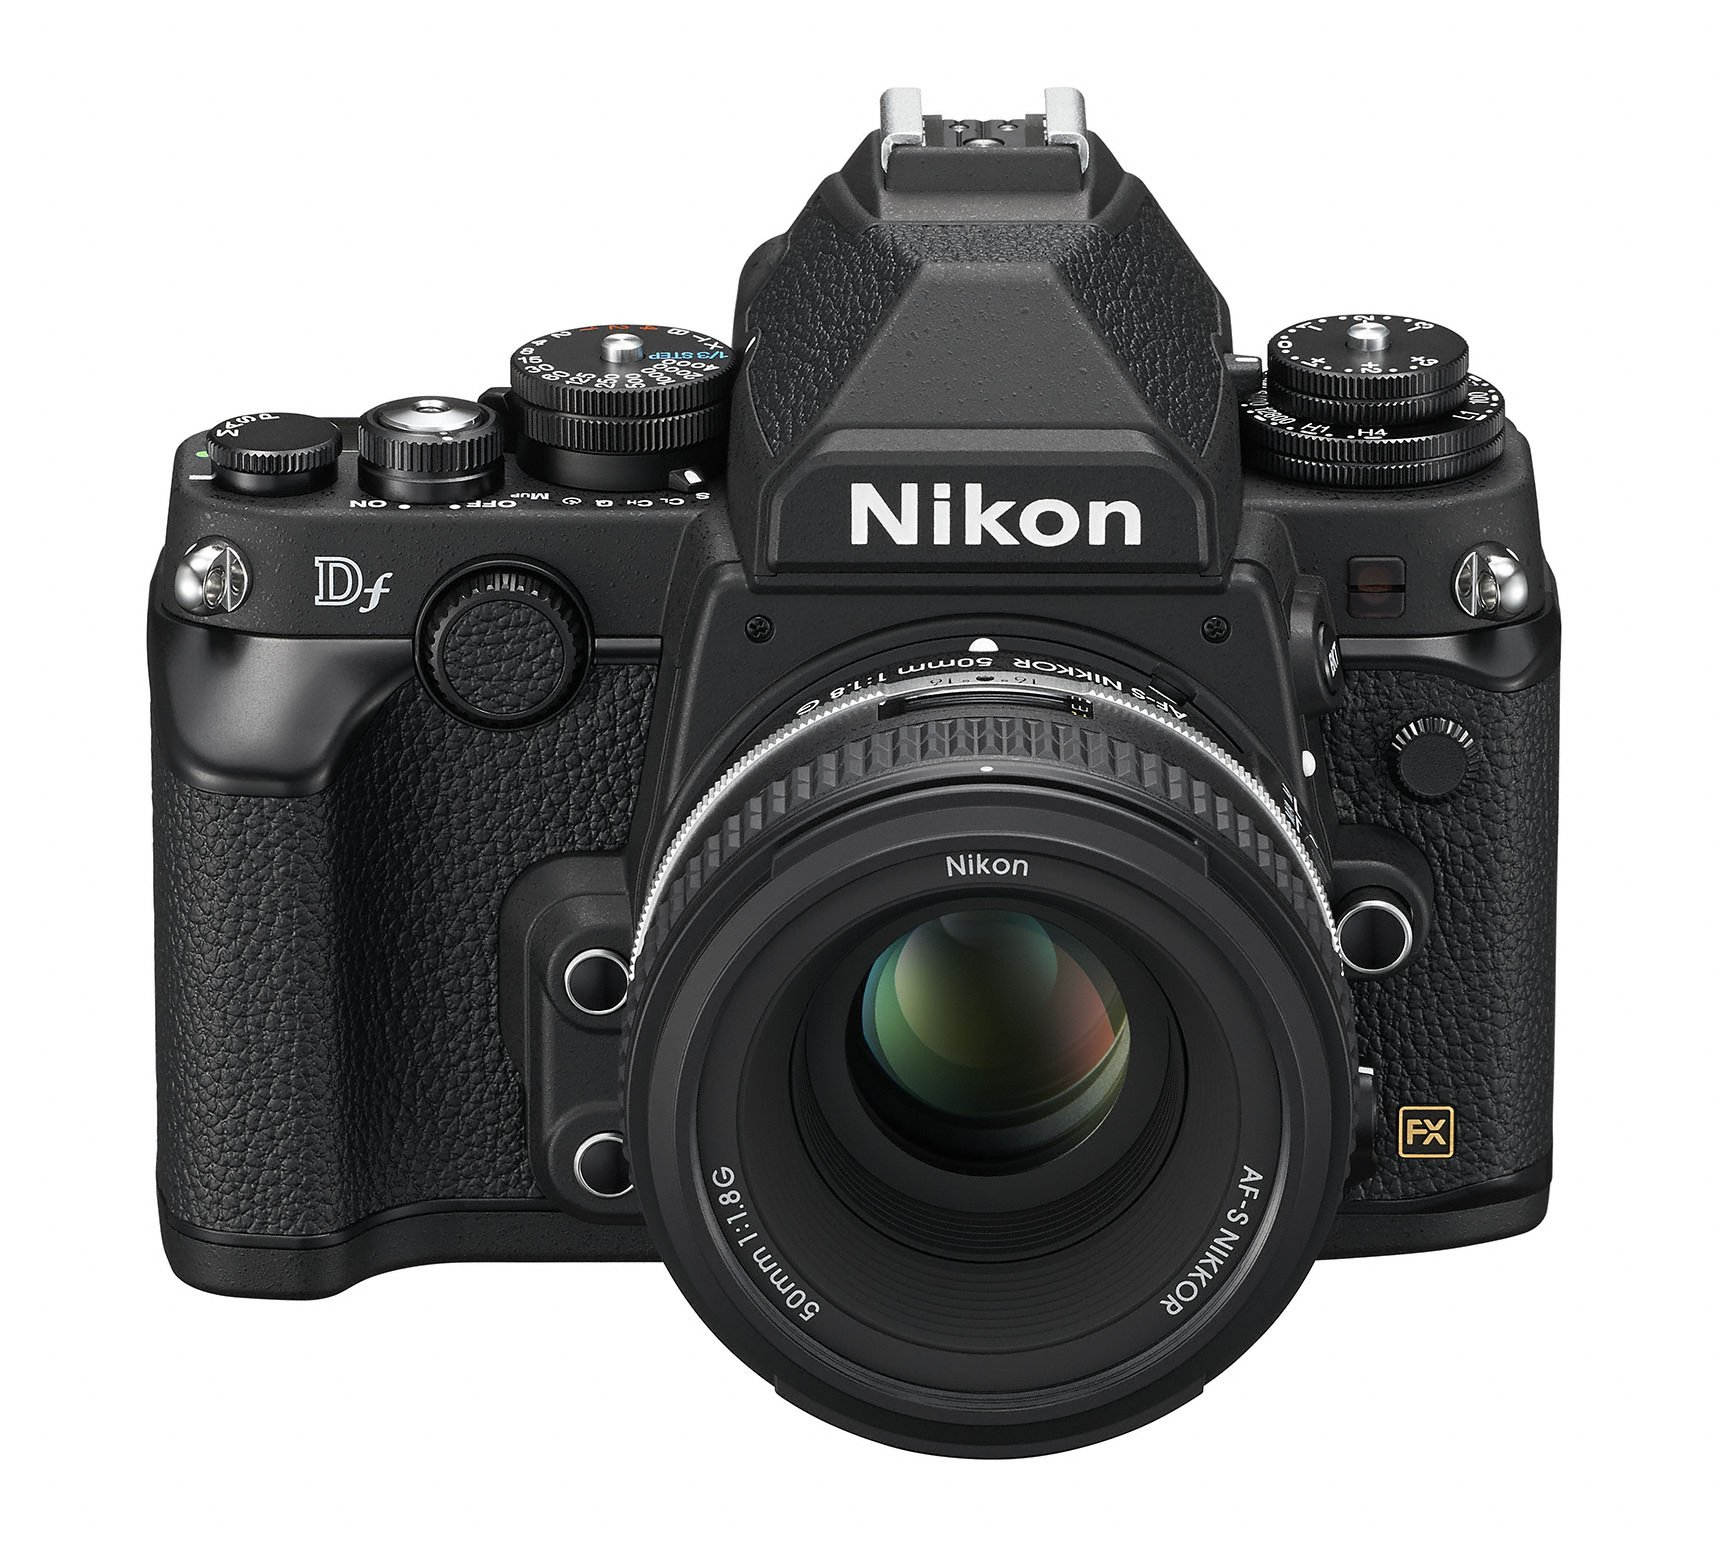 Nikon Df with AF-S 50mm f/1.8